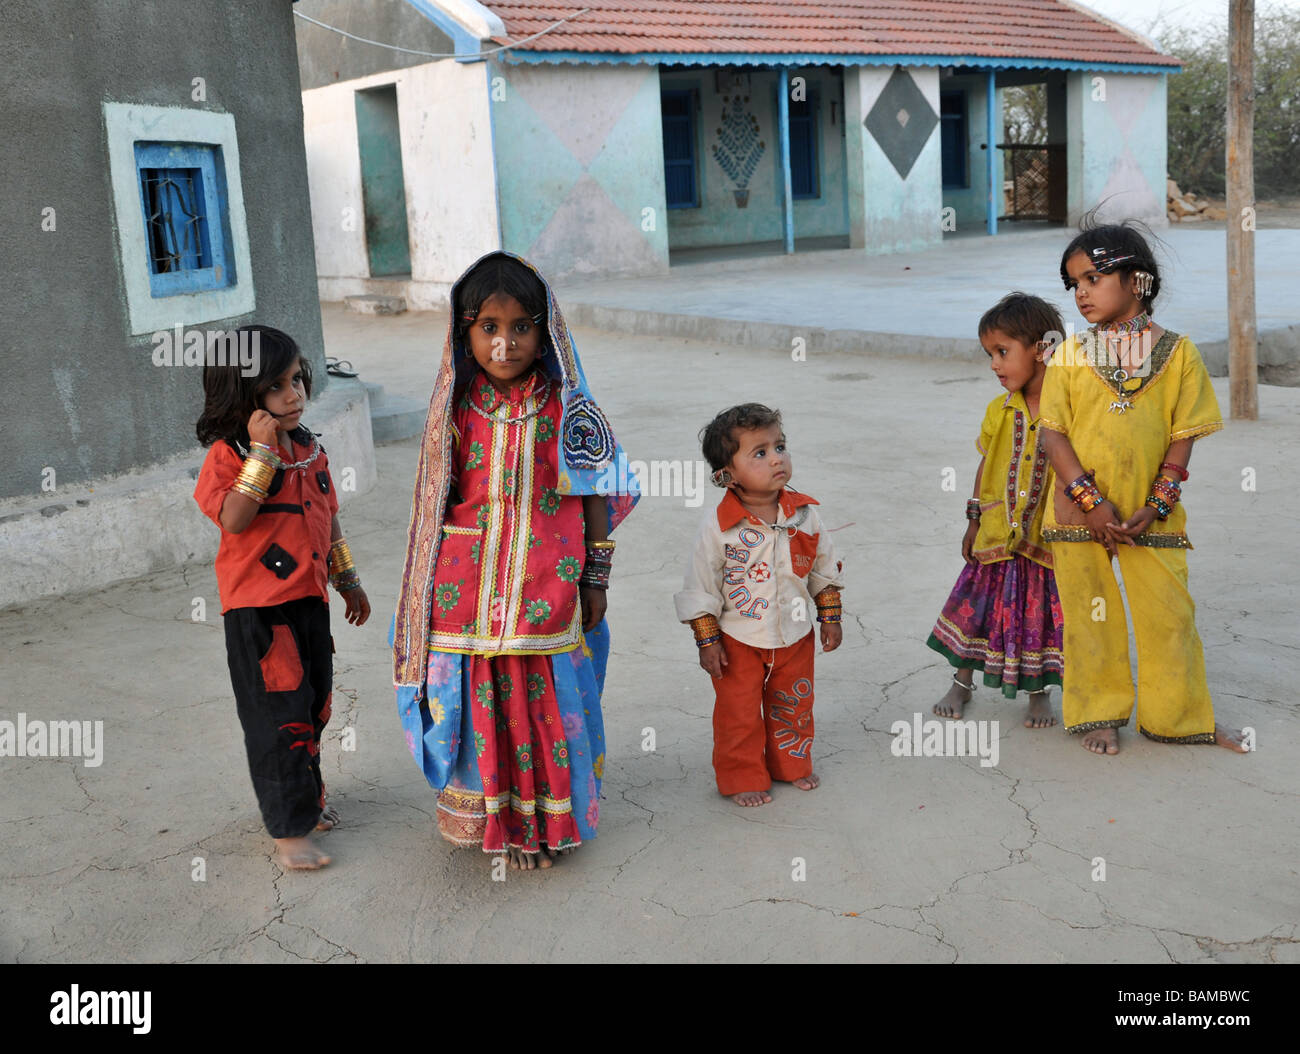 A group of young children wearing beautifully designed and embroidered clothing from the Tribal village of Hodka, - Stock Image